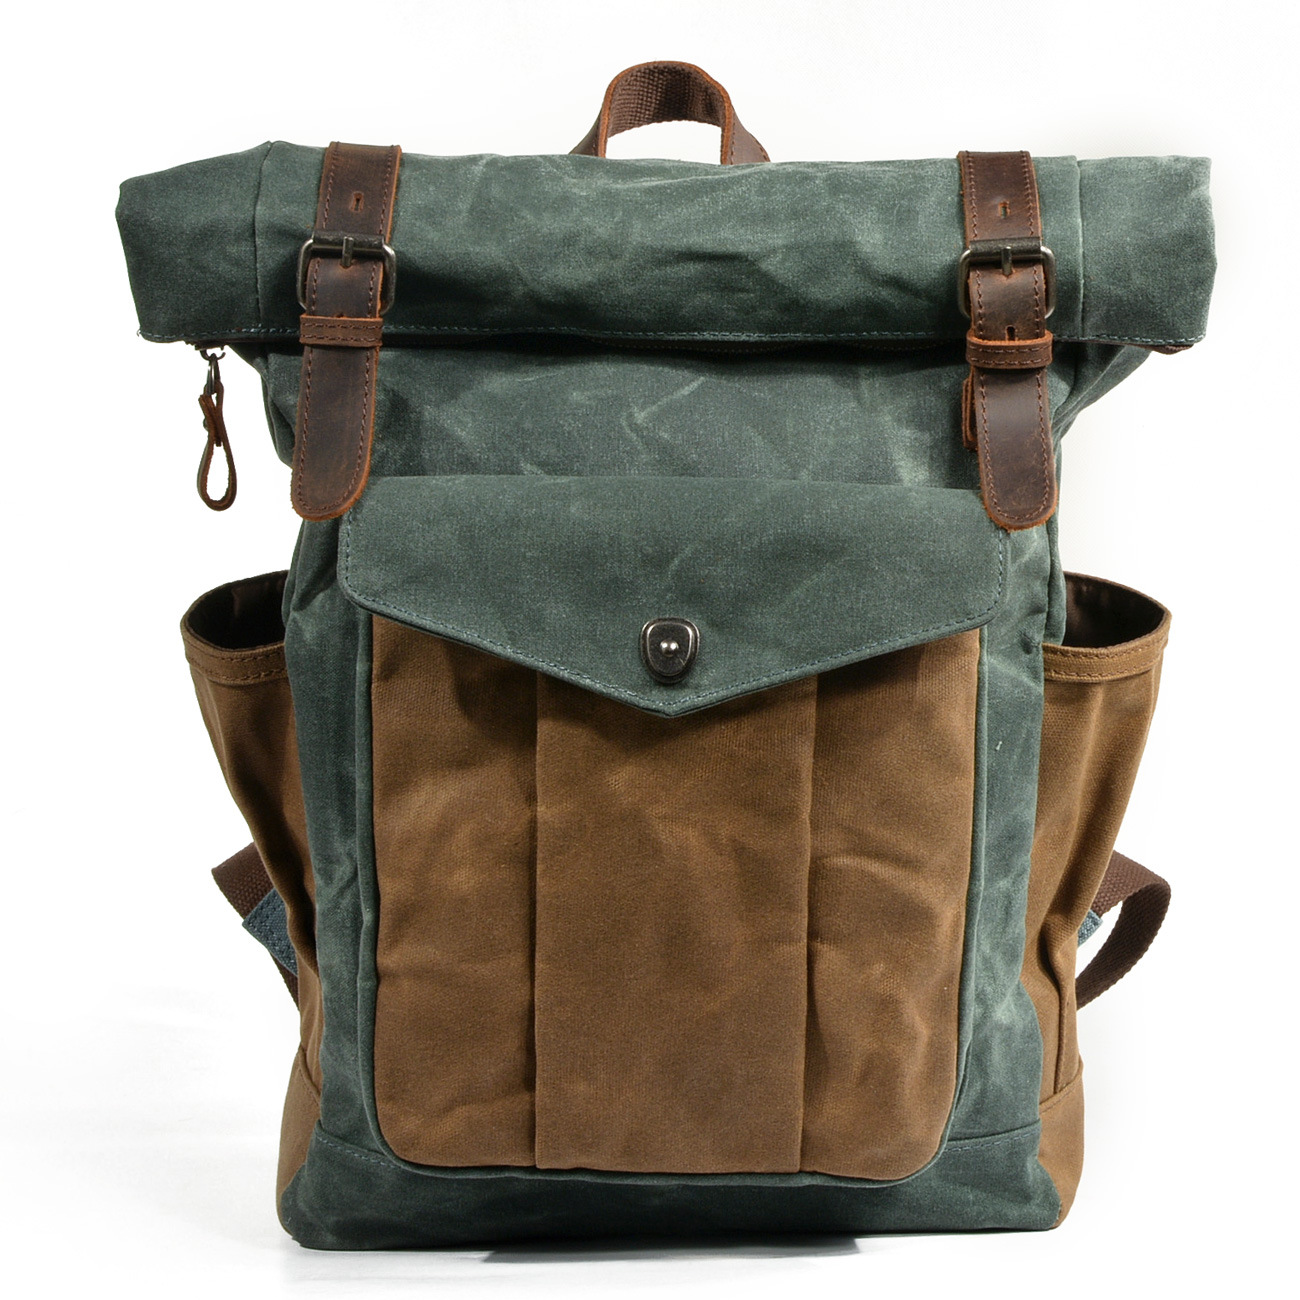 2018 Vintage Men Large capacity Military Oiled Leather Canvas Backpacks School Bags Teenagers Laptop Backpack Duffel